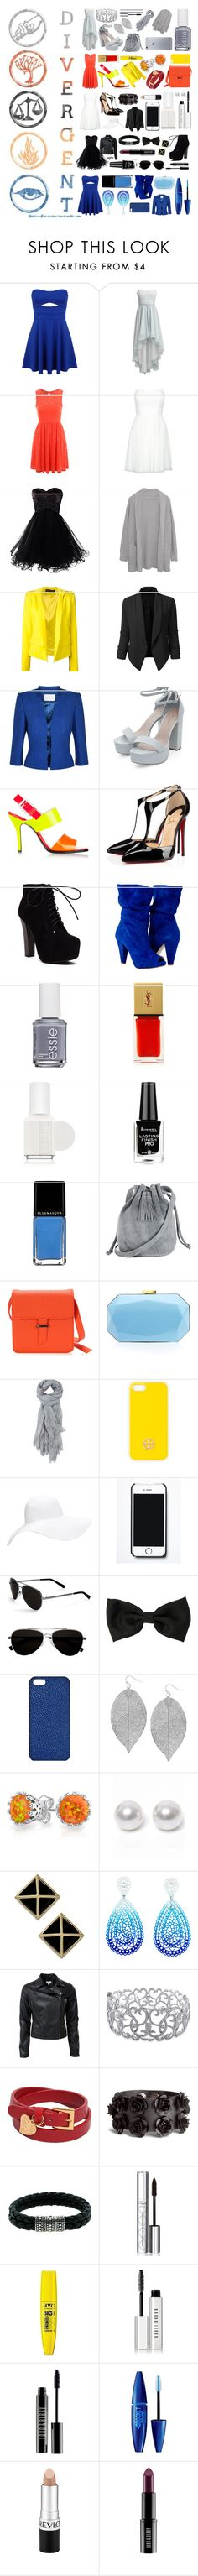 """""""✨Choose your faction✨"""" by lexi-loves-fashion ❤ liked on Polyvore featuring Miss Selfridge, Swing, Jane Norman, Margaret O'Leary, Alexandre Vauthier, LE3NO, Jacques Vert, Jil Sander, Christian Louboutin and Essie"""